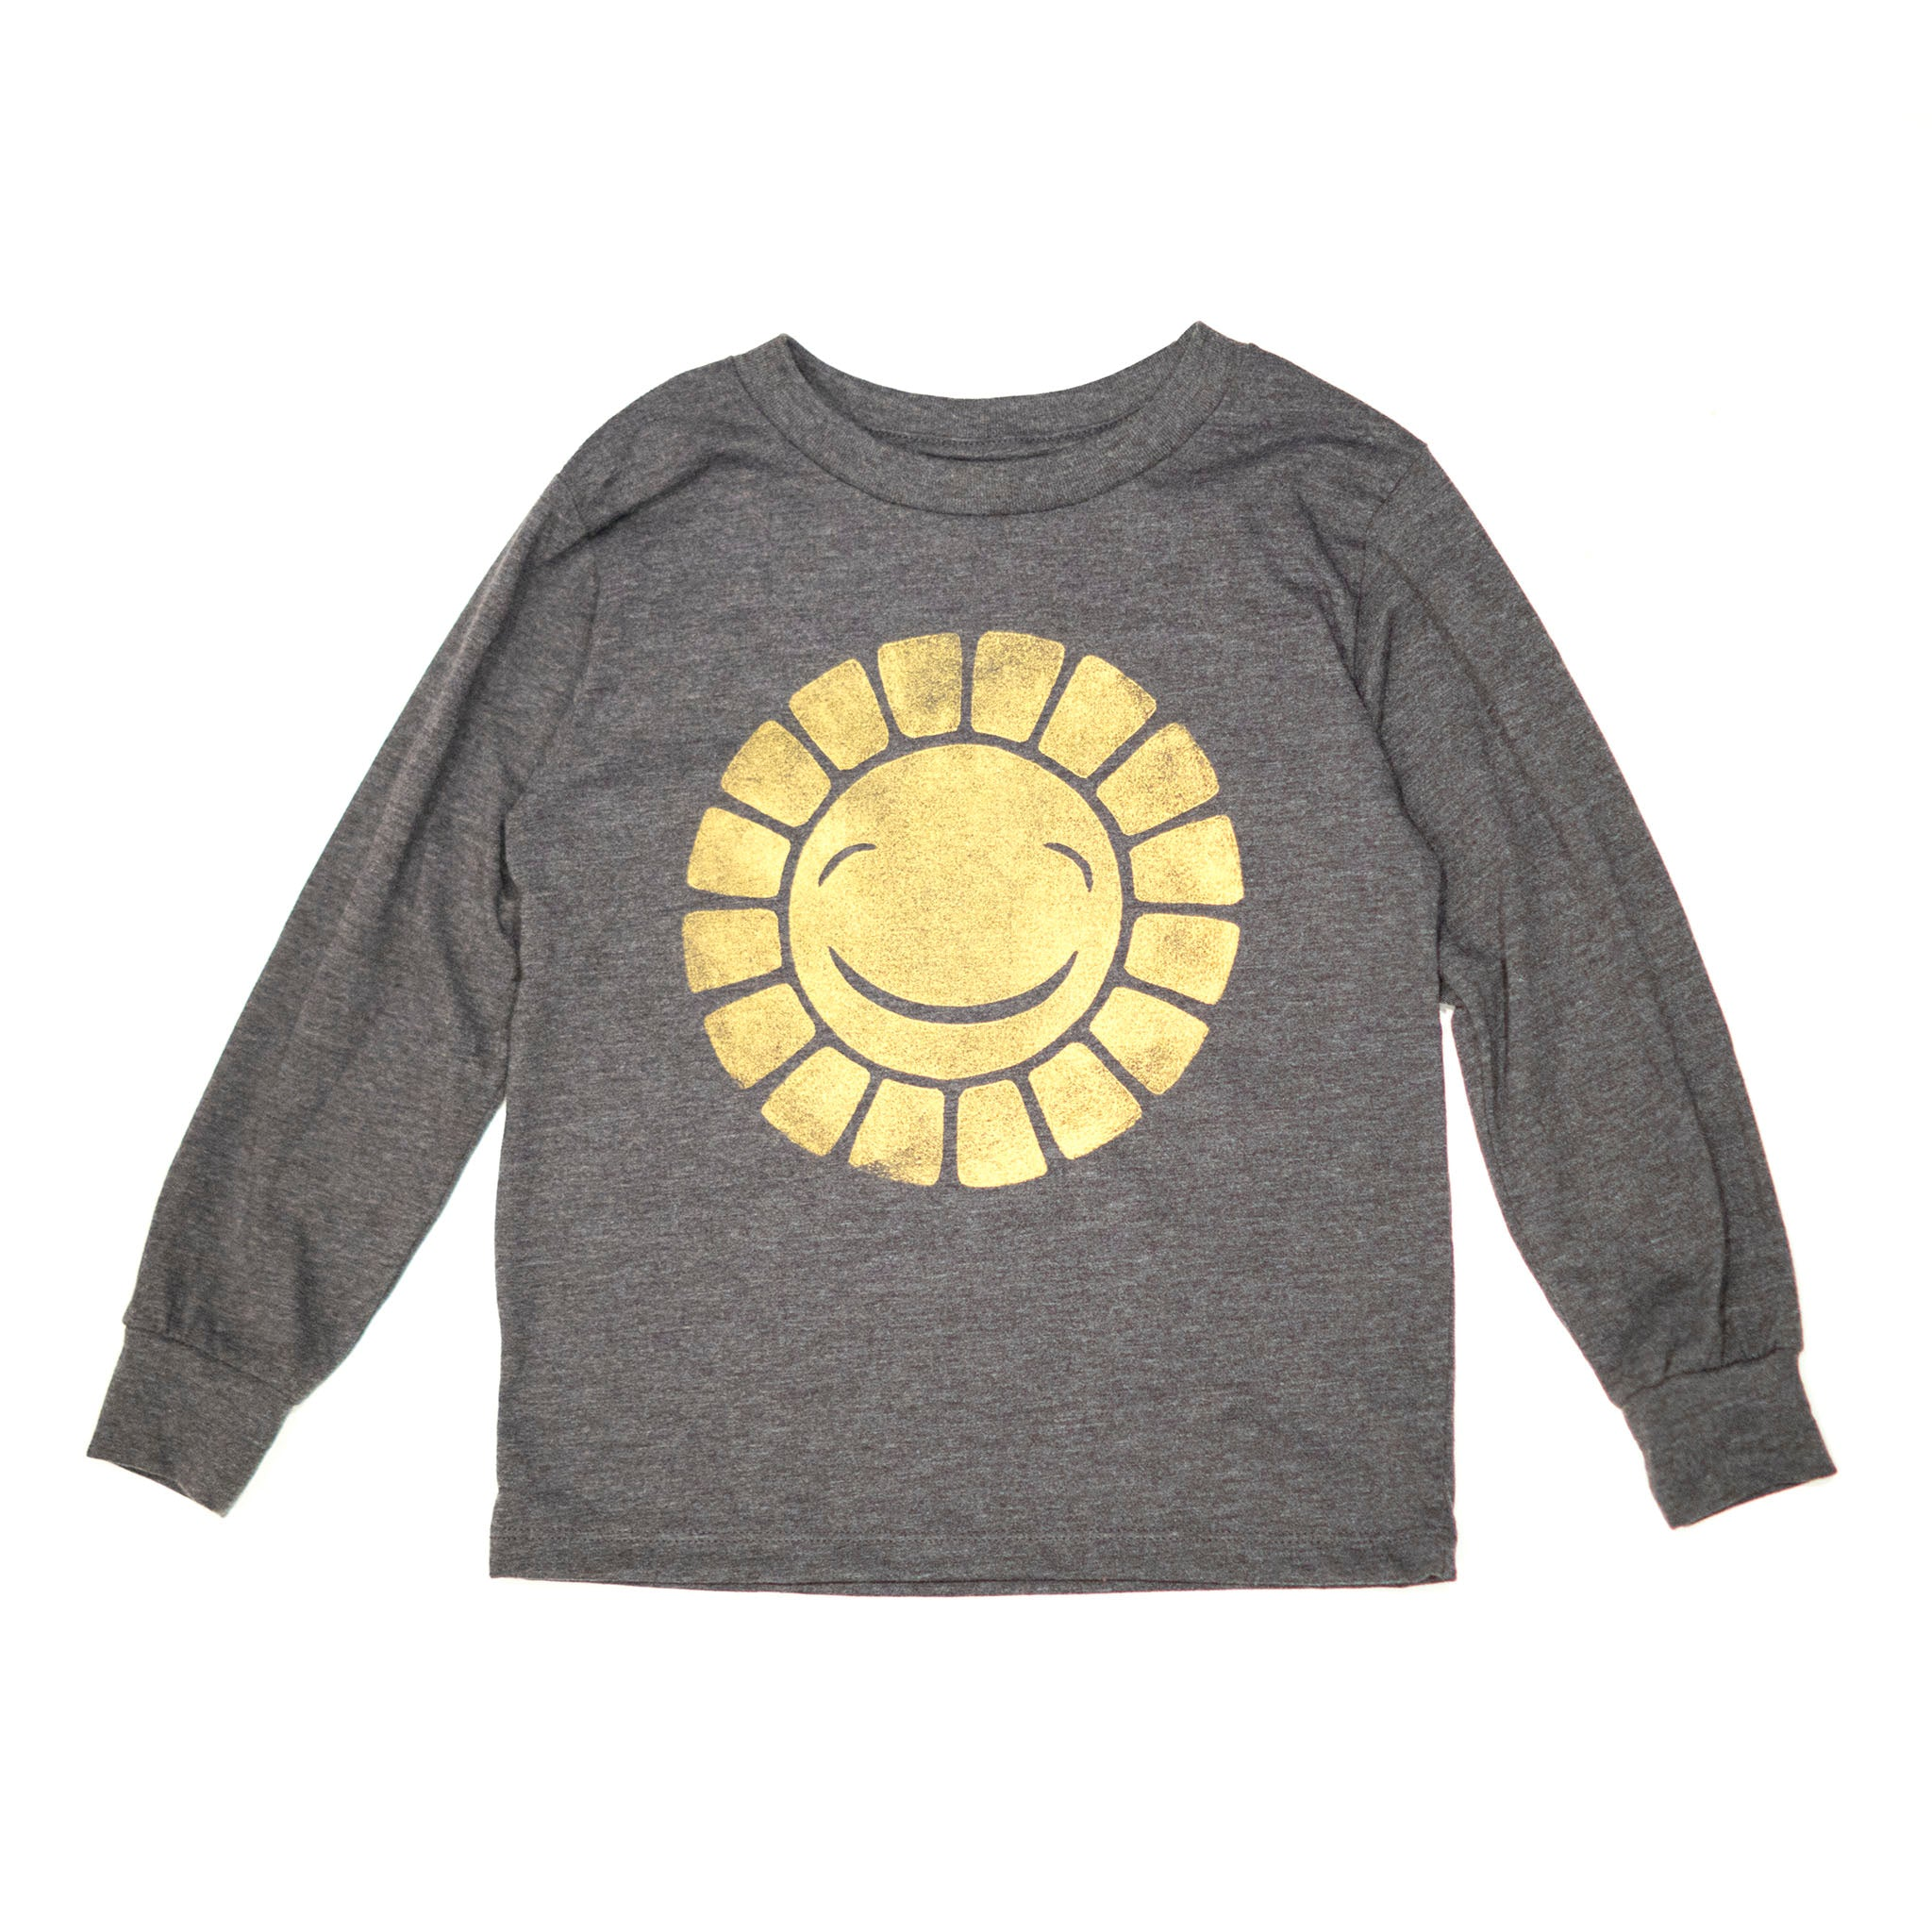 Sunny Go Go Limited Edition Long Sleeve Tee